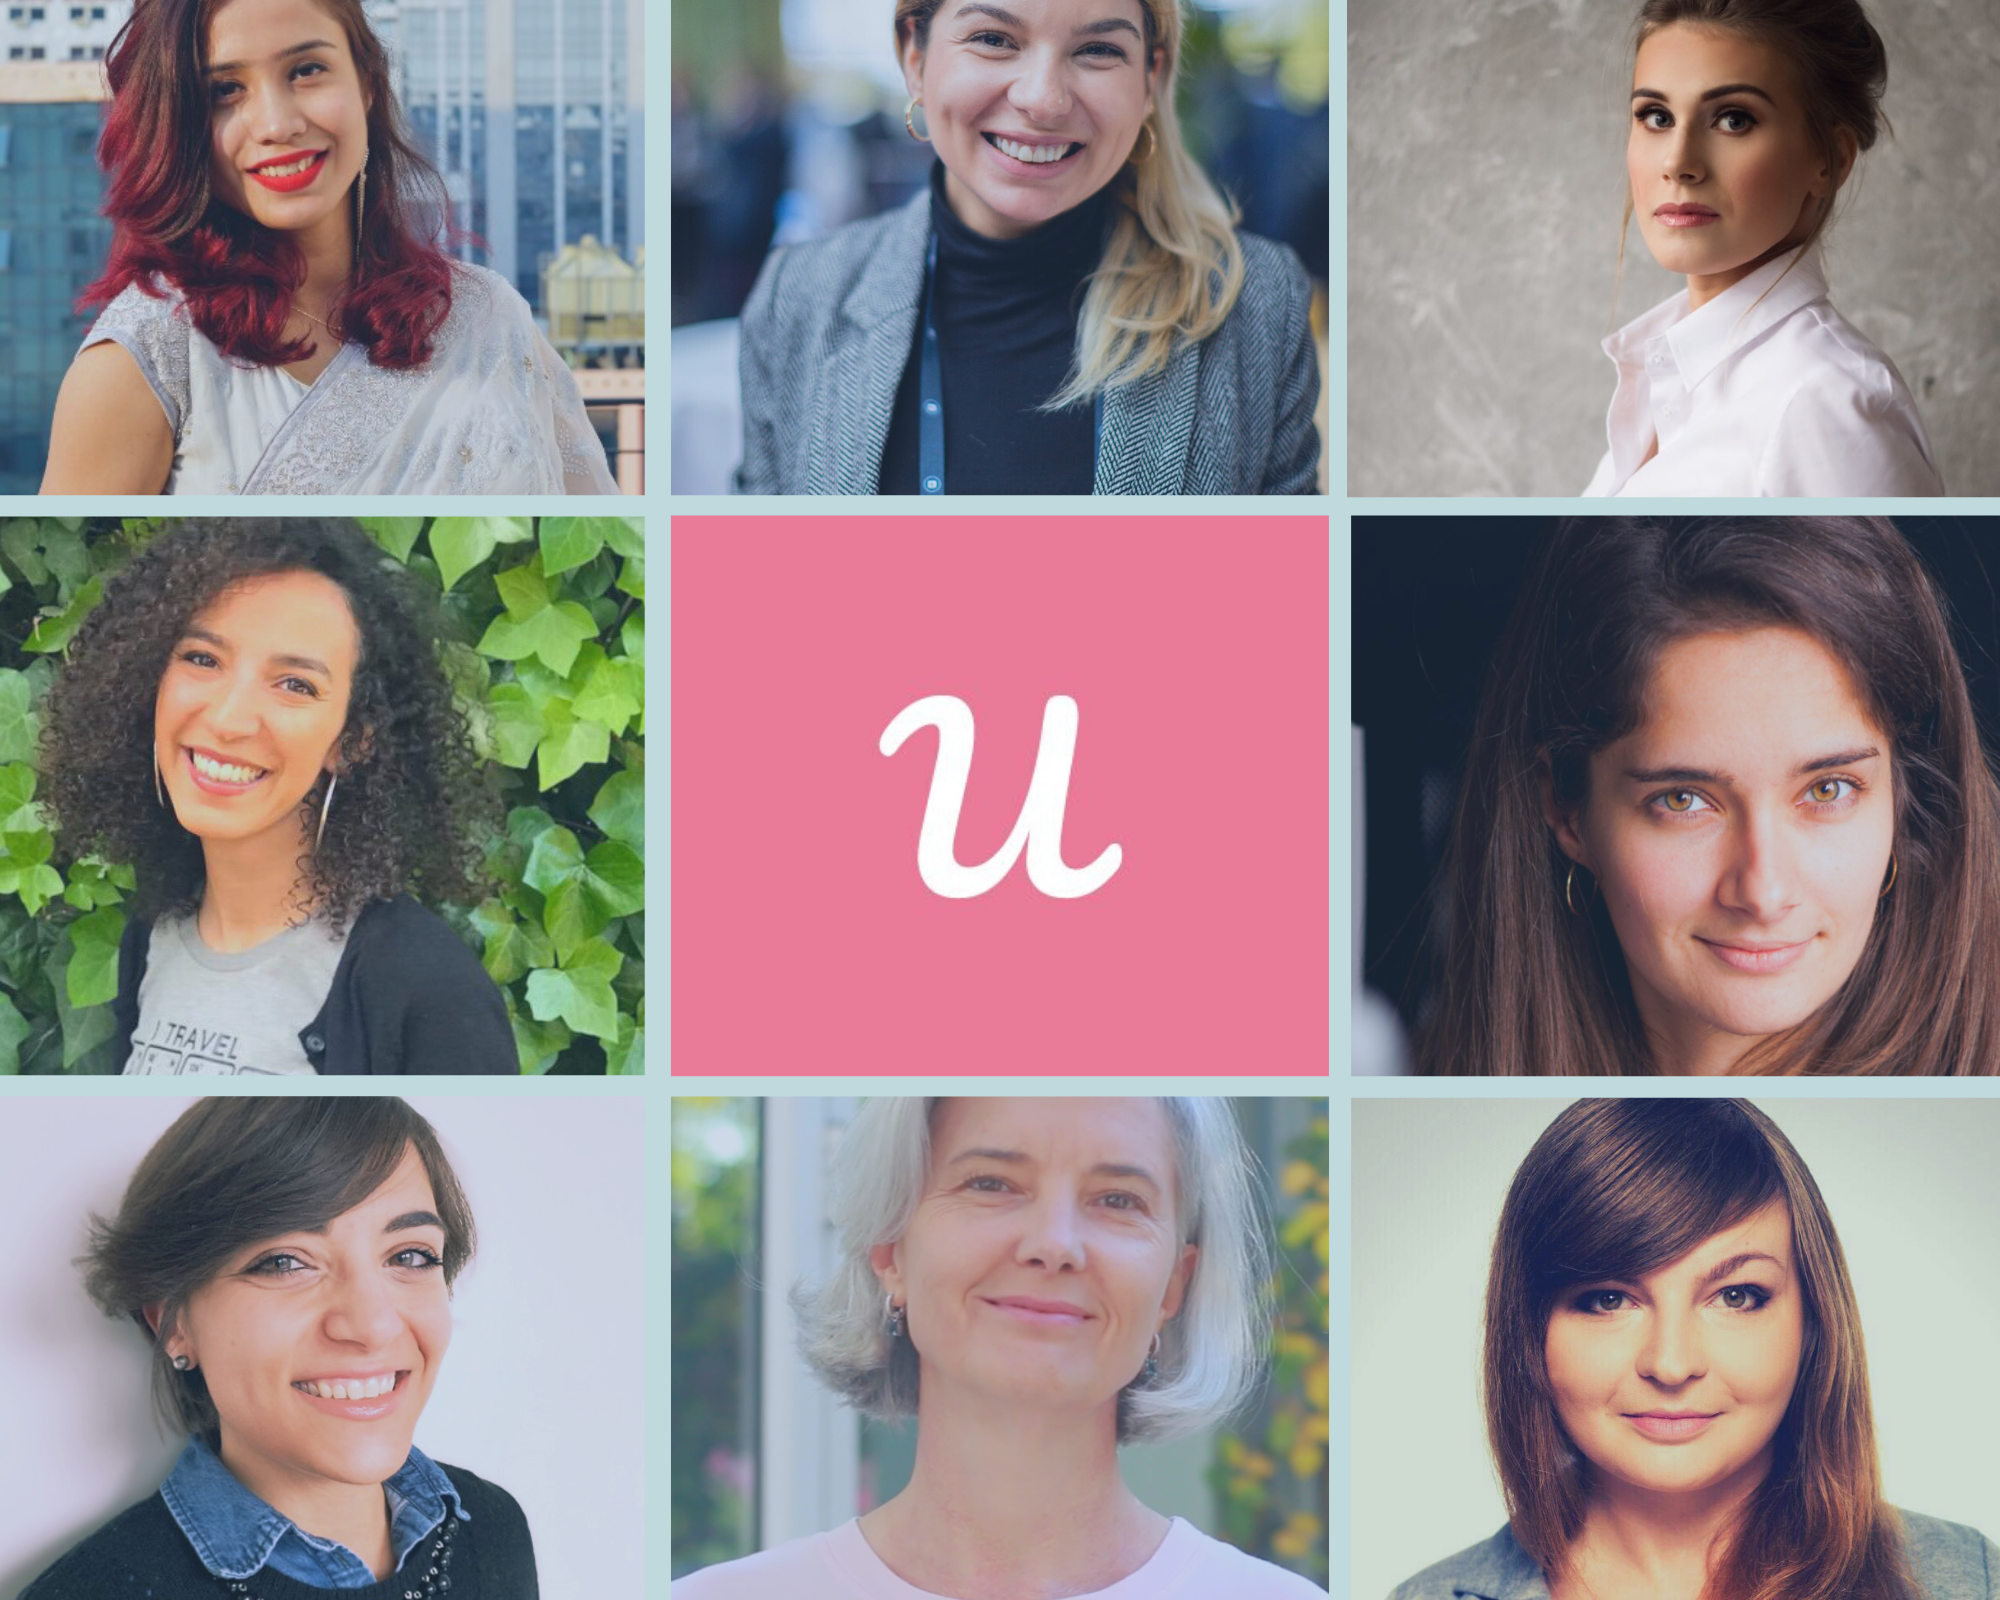 Women in Product, Women in SaaS - Stories from 9 Inspiring Female Influencers in Tech